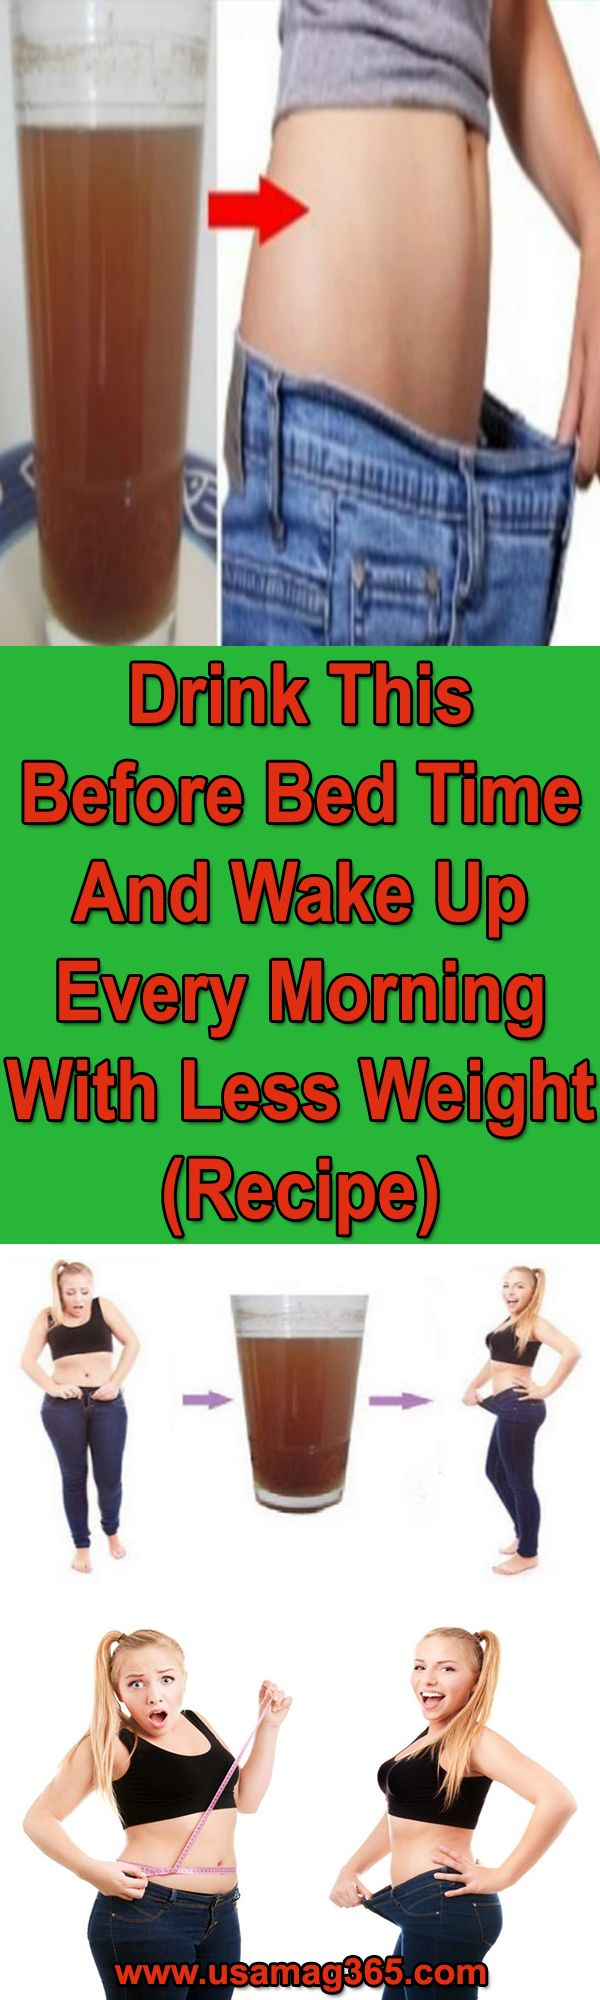 whey protein before workout lose weight